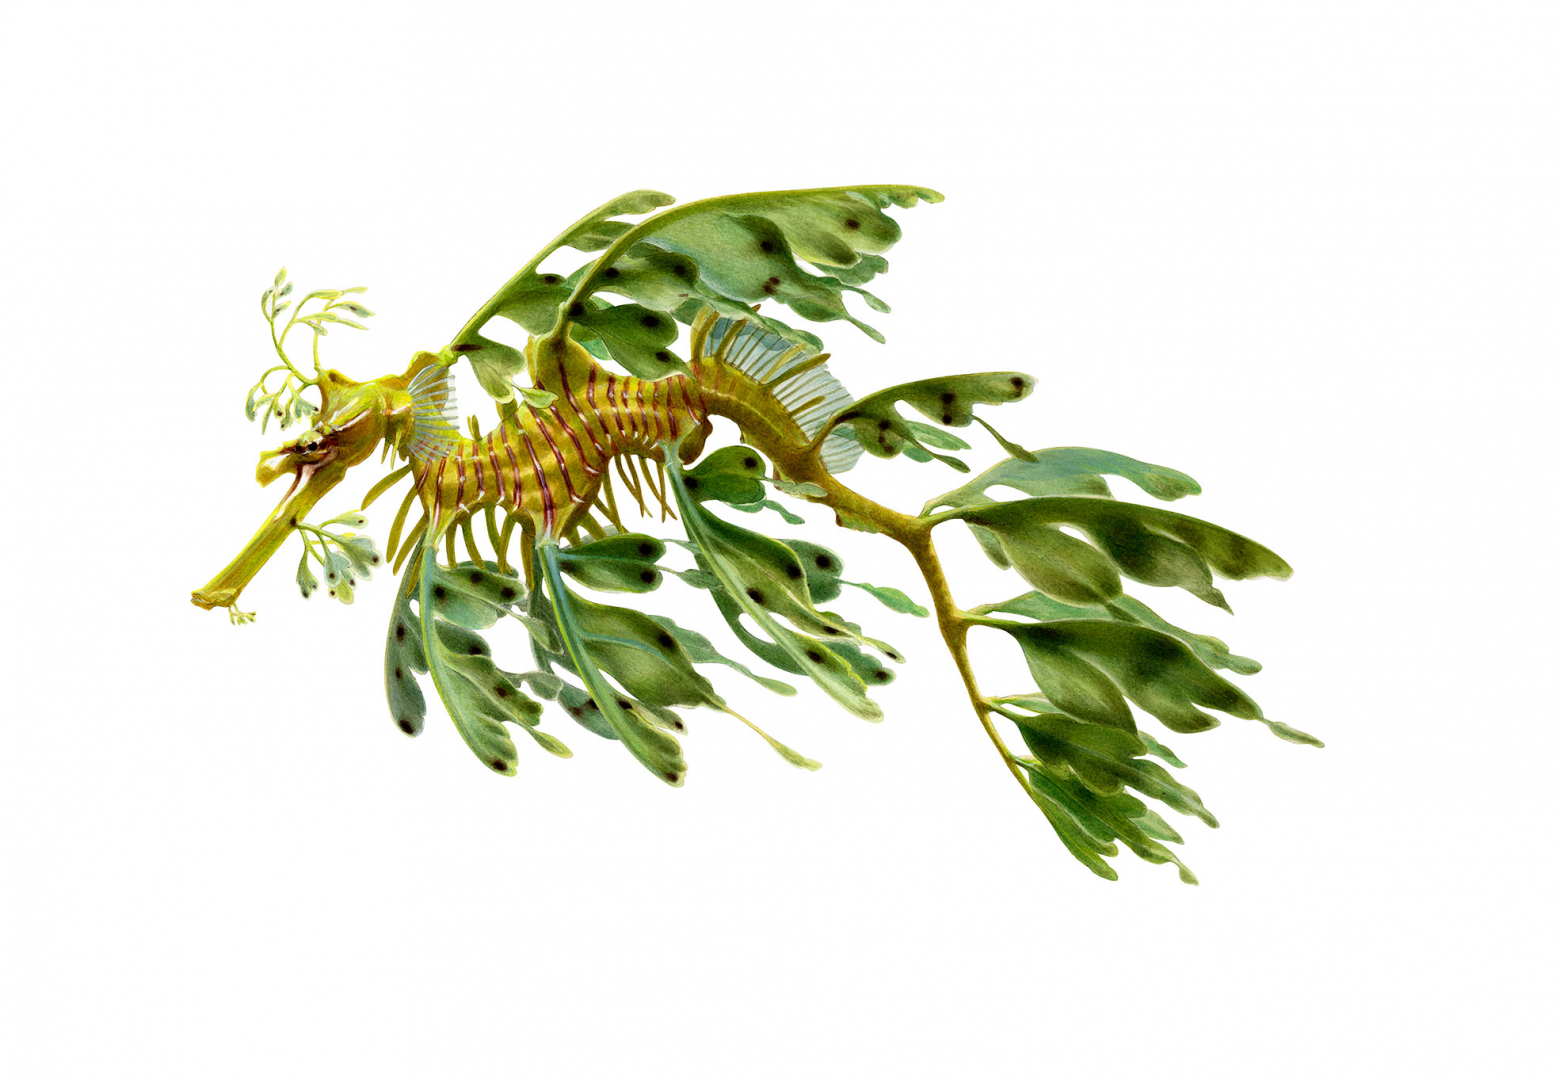 for-Explore-iconsSeadragon,Leafy2-1